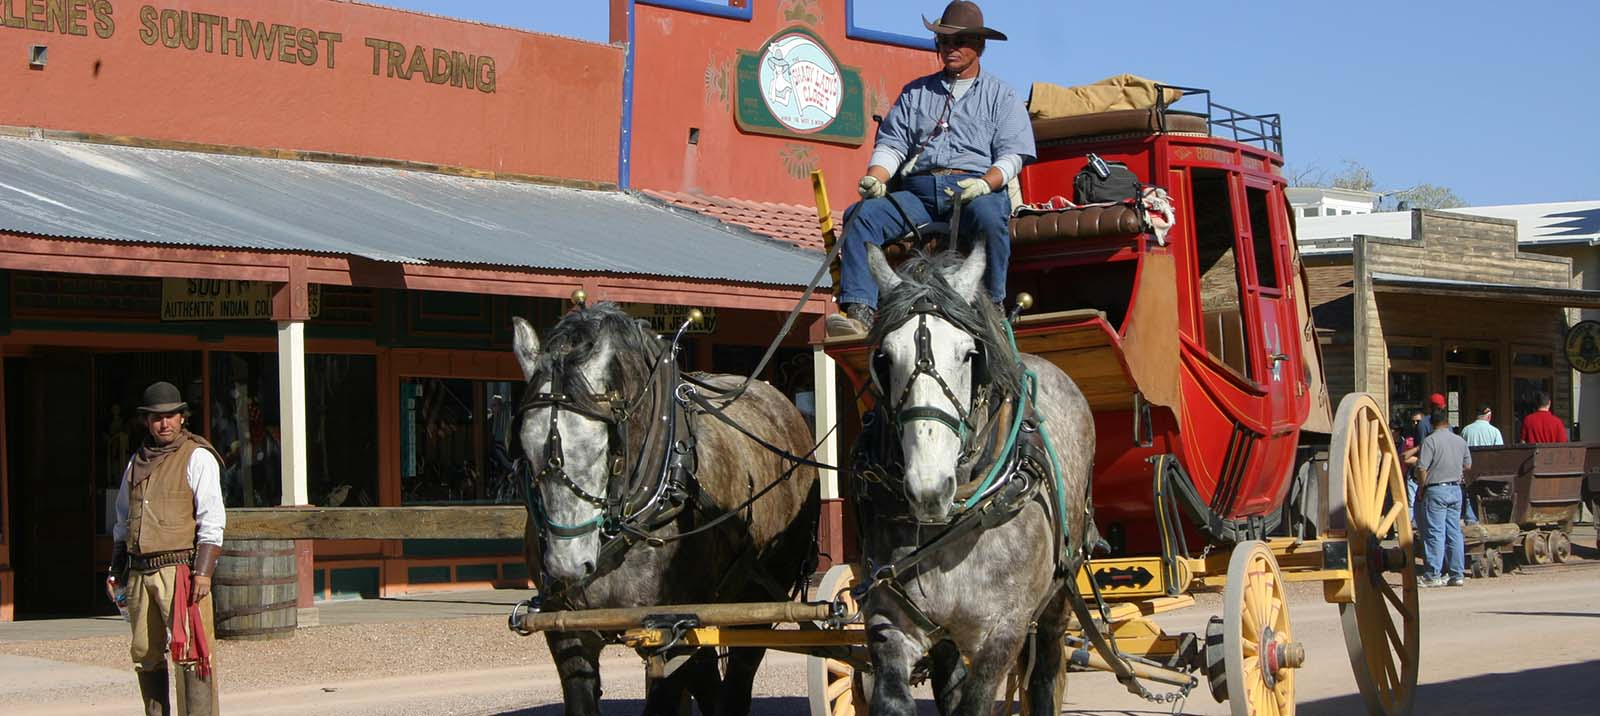 Arizona history is alive in Tombstone